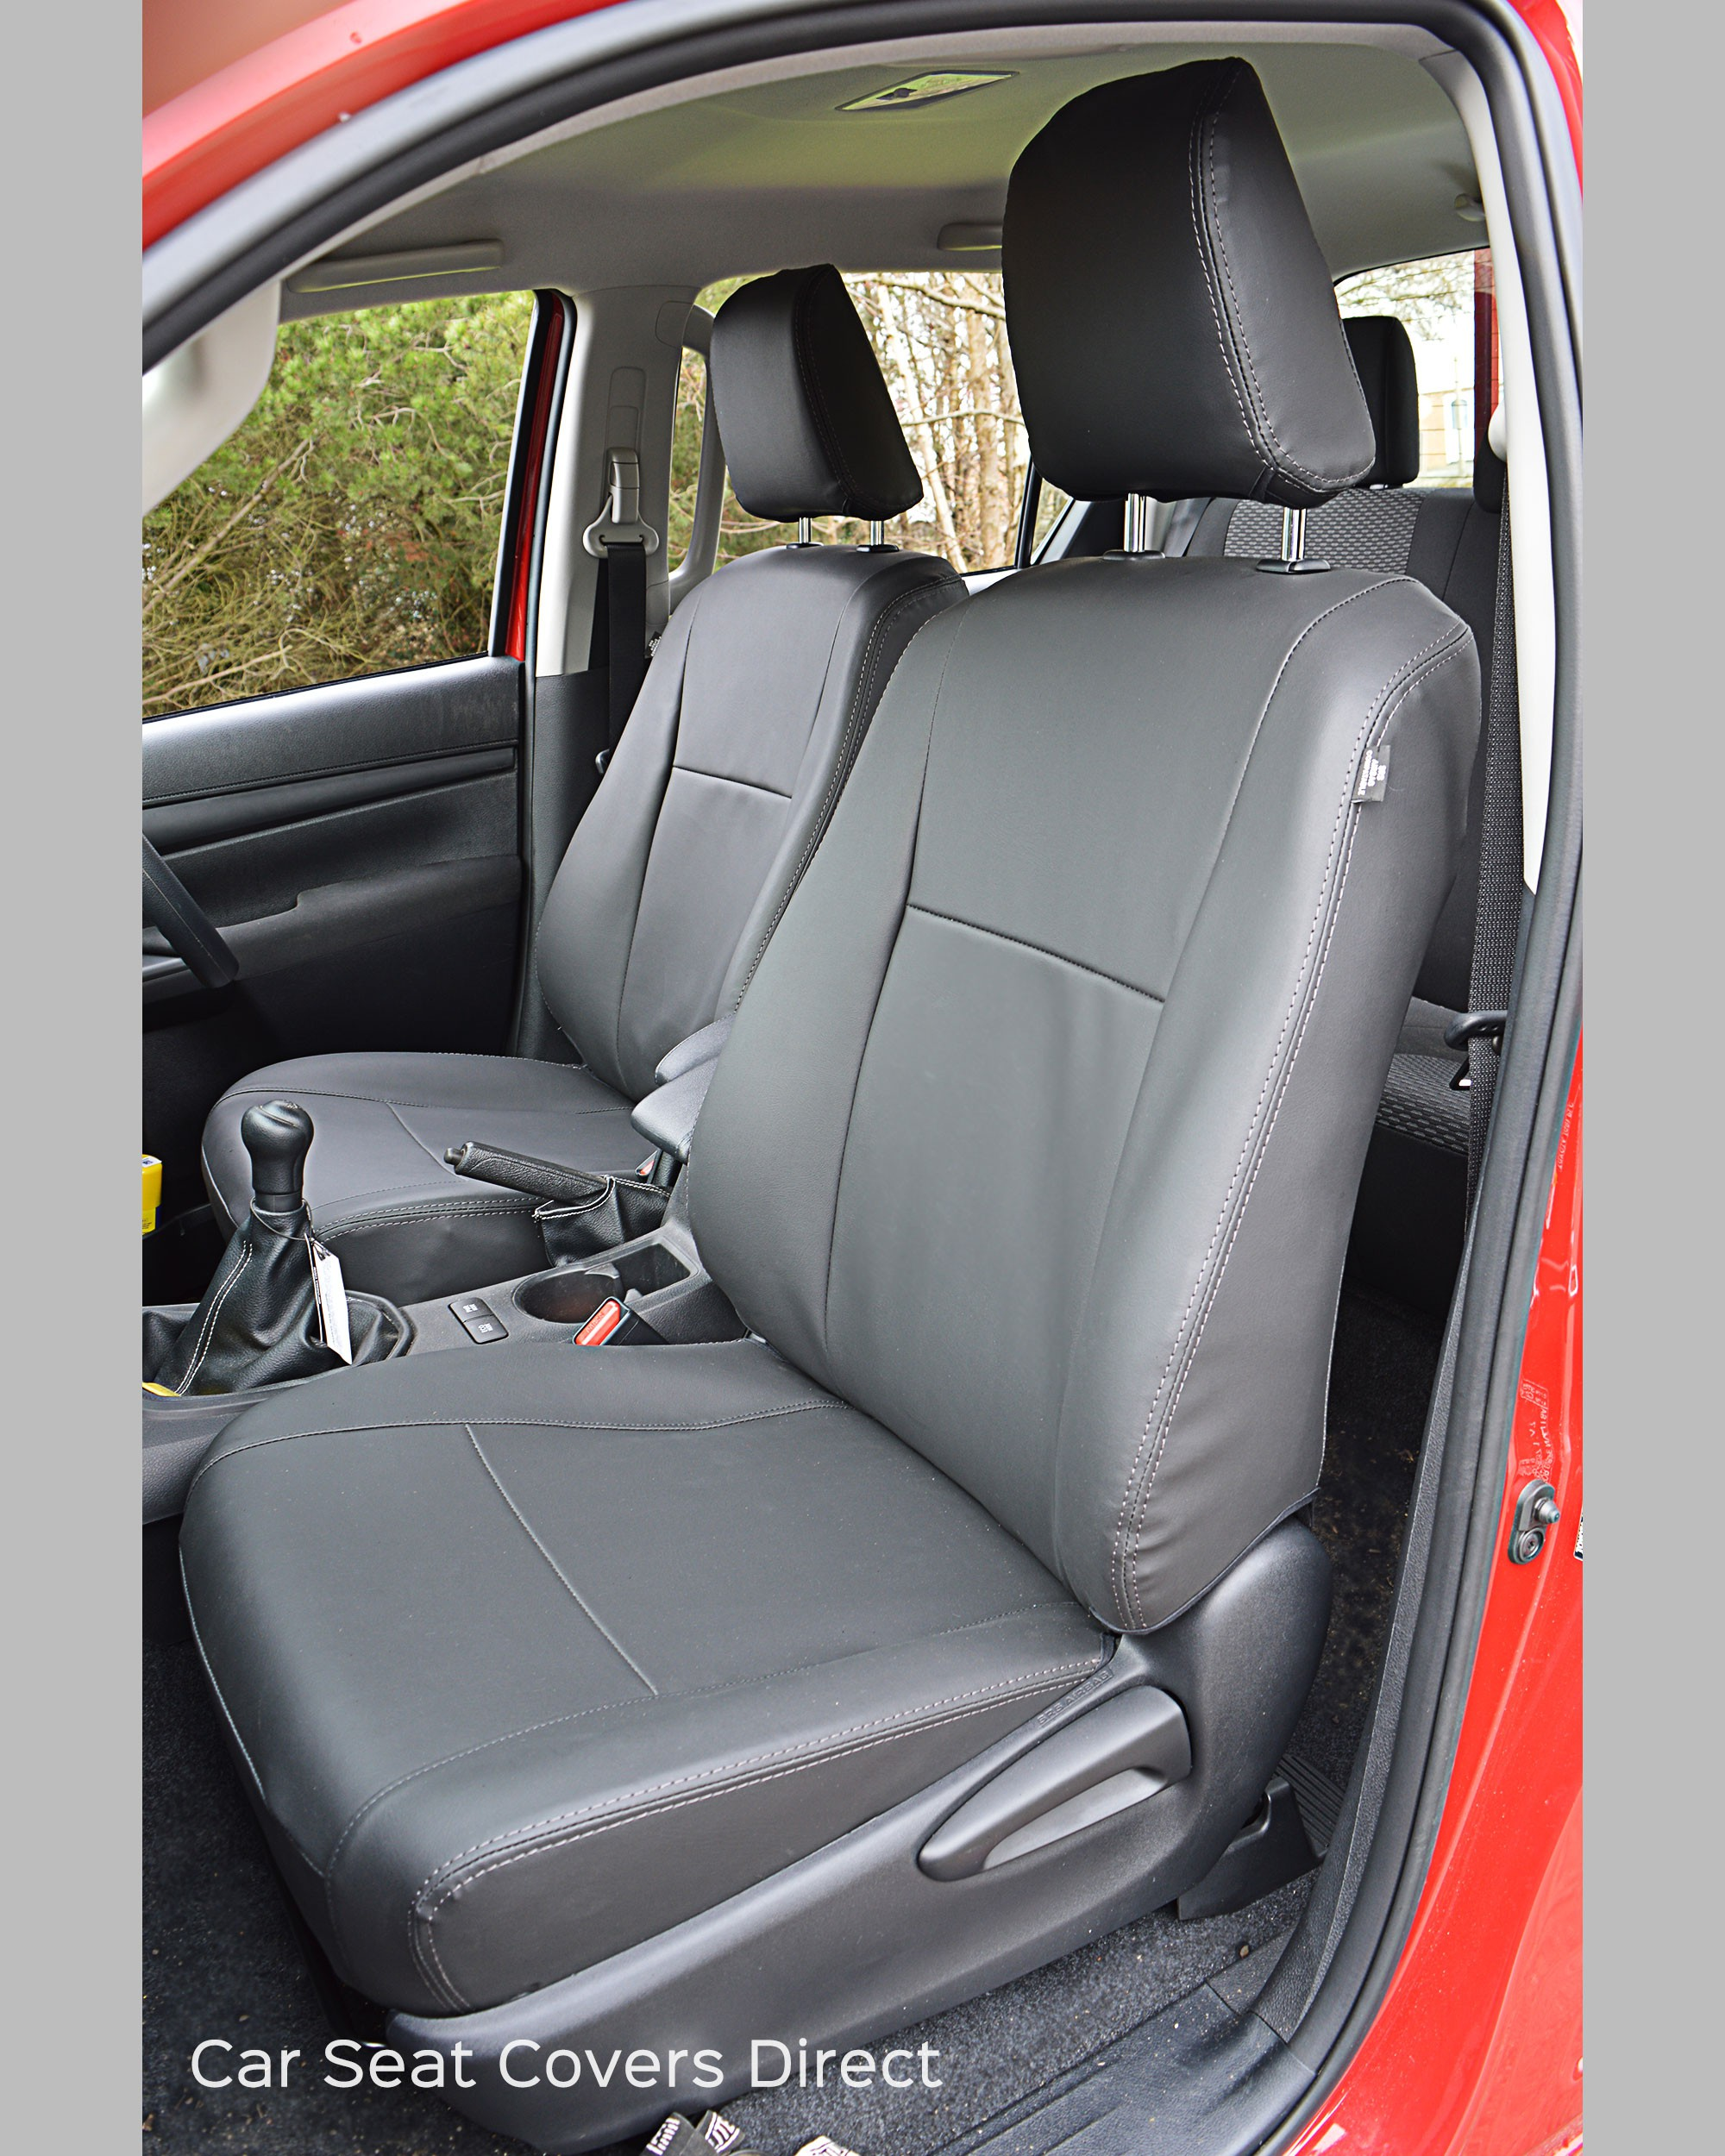 Toyota Hilux Tailored Seat Covers Car Seat Covers Direct